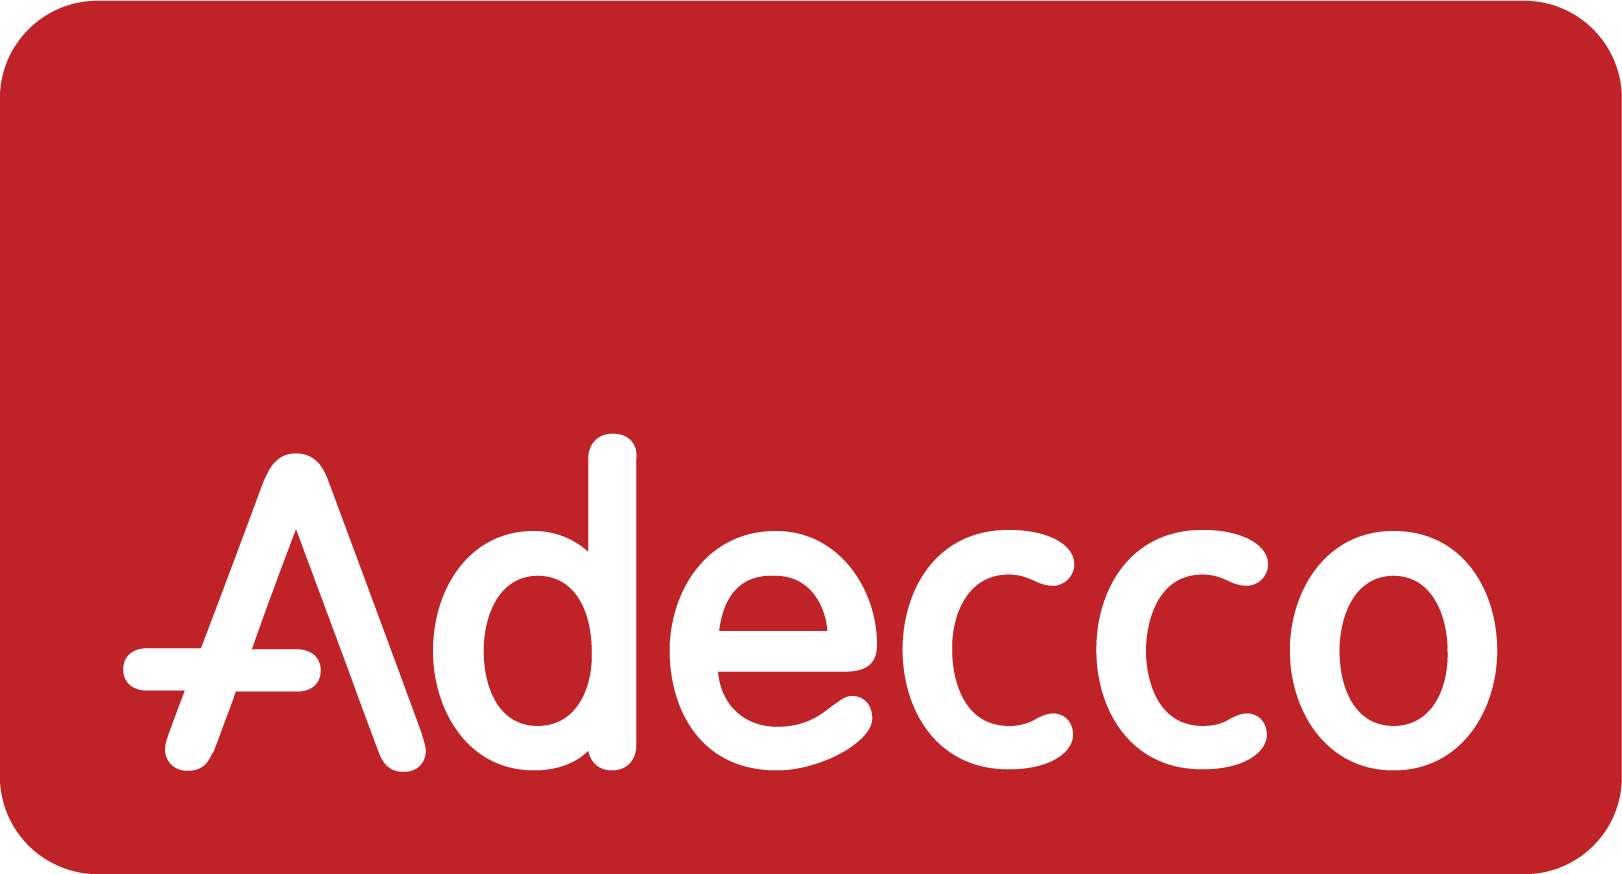 Our client: Adecco logo